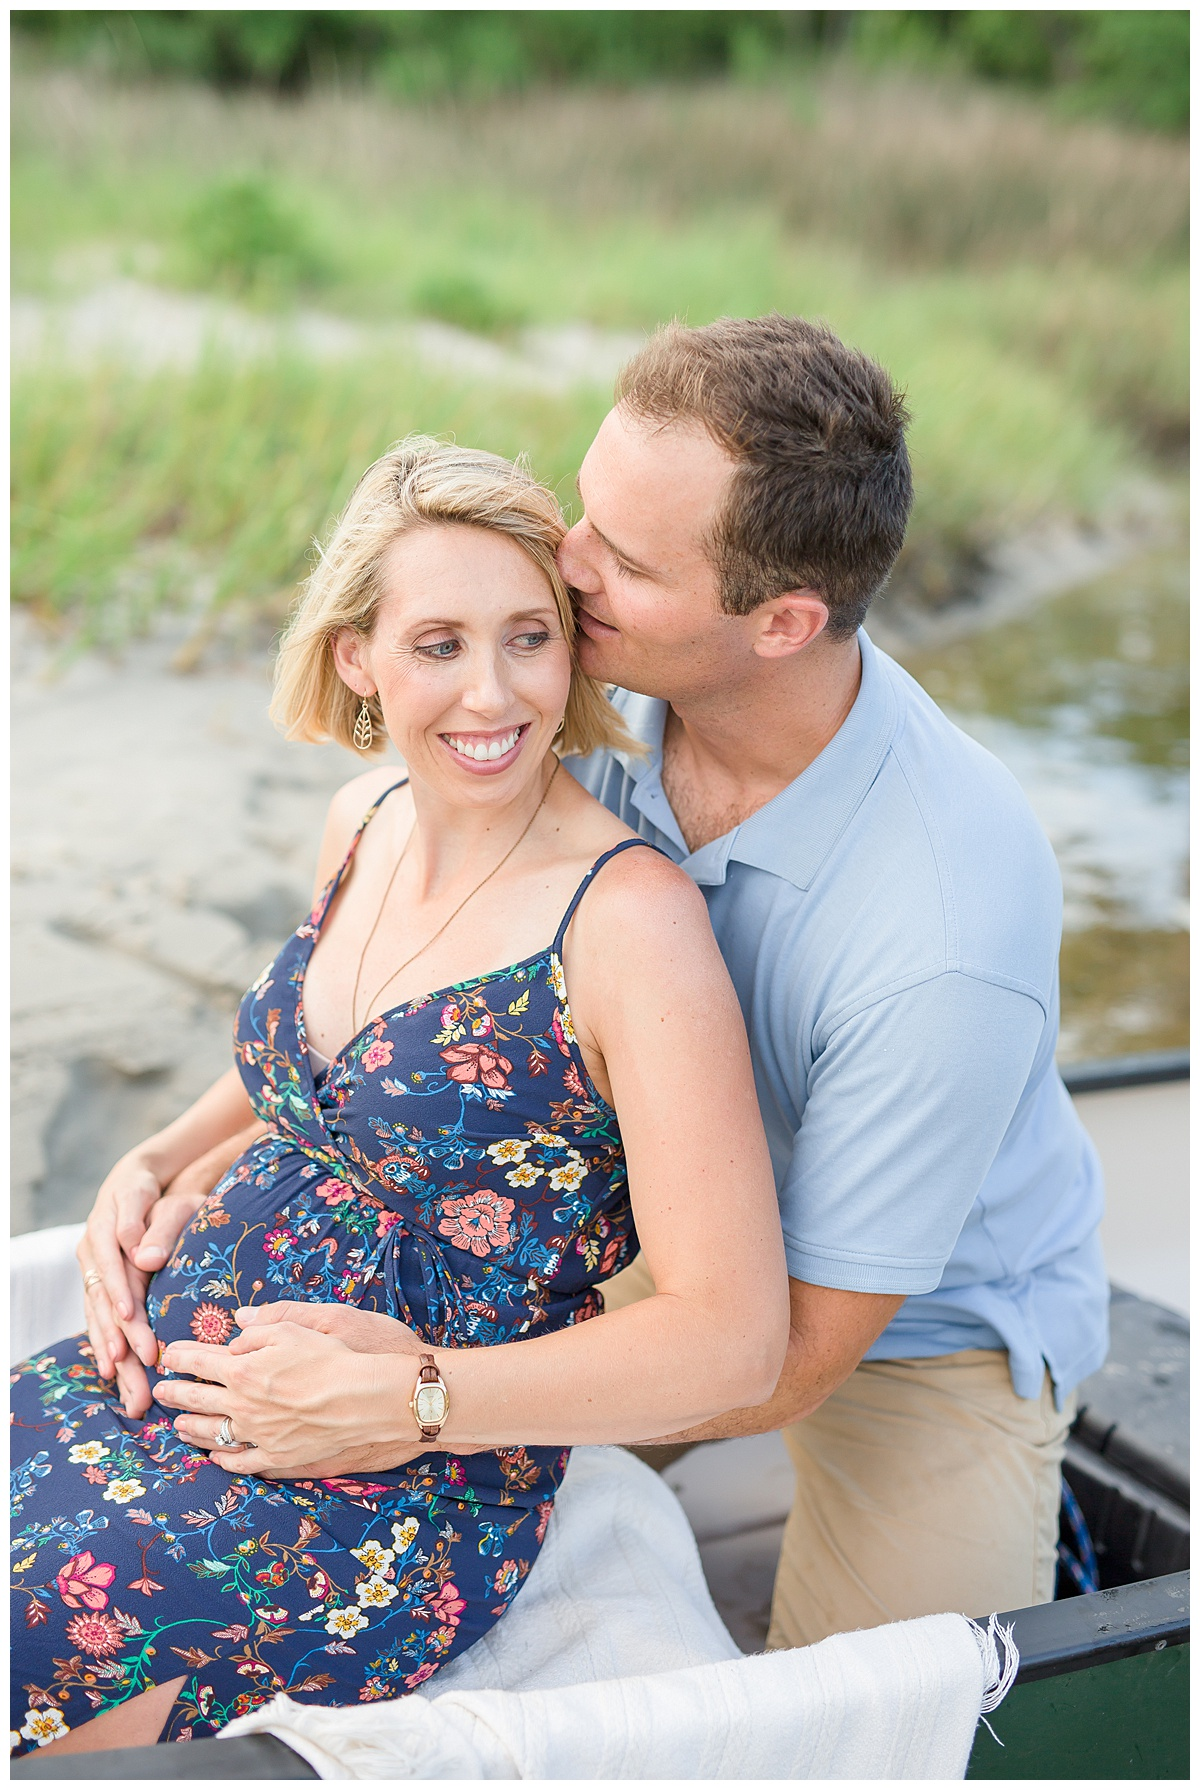 Michele + Jake's Maternity Session // First Landing State Park